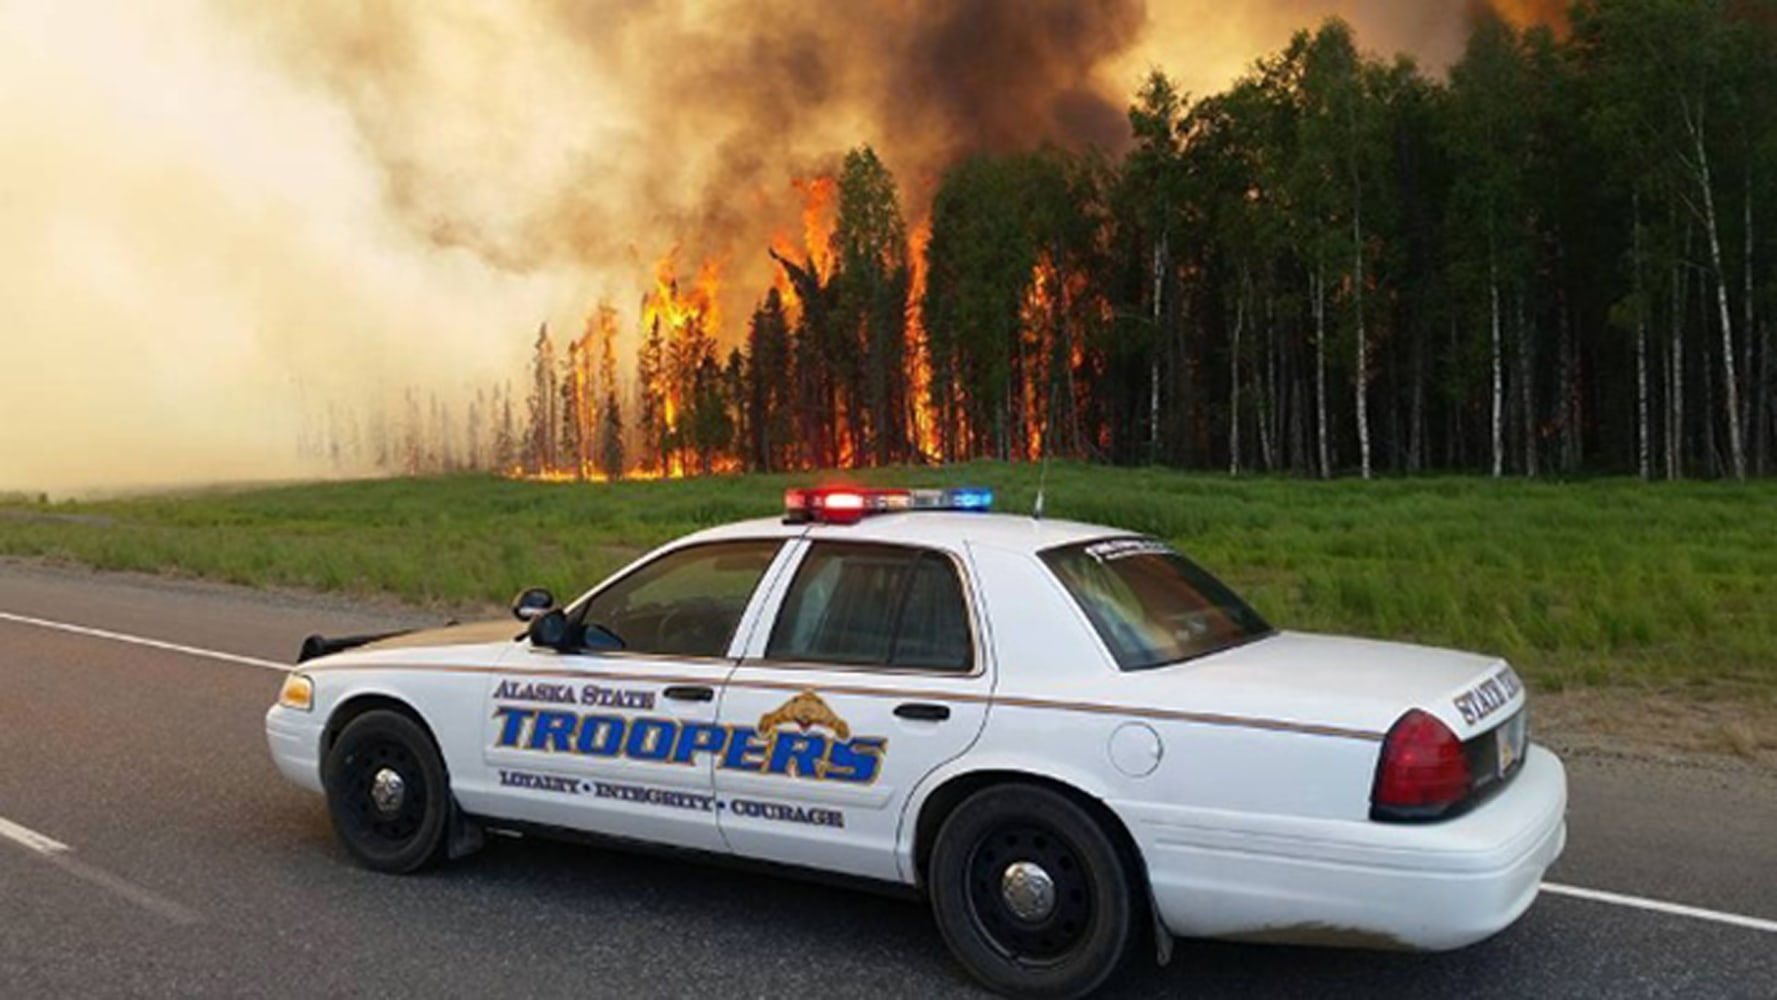 Crews from lower 48 race to rampaging wildfire near for Department of motor vehicles anchorage alaska